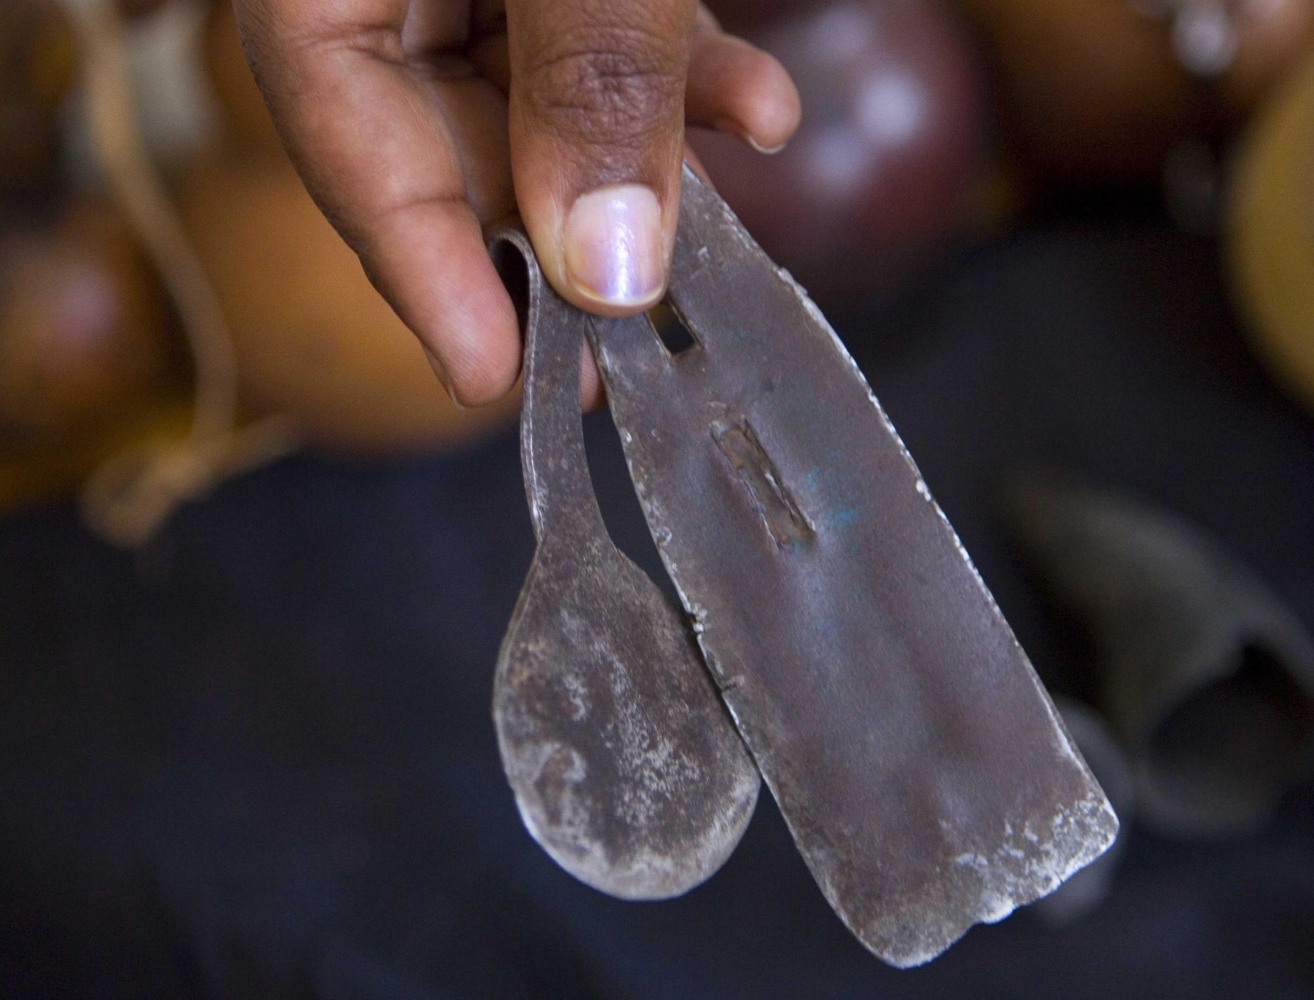 the types and health risks of female genital mutilation Fgm/c poses serious physical and mental health risks for women and young girls, especially for those who have undergone extreme forms of  female genital mutilation/cutting (fgm/c) refers to a variety of  type 1 or clitoridectomy: partial or total removal of the clitoris and/or the clitoral hood.